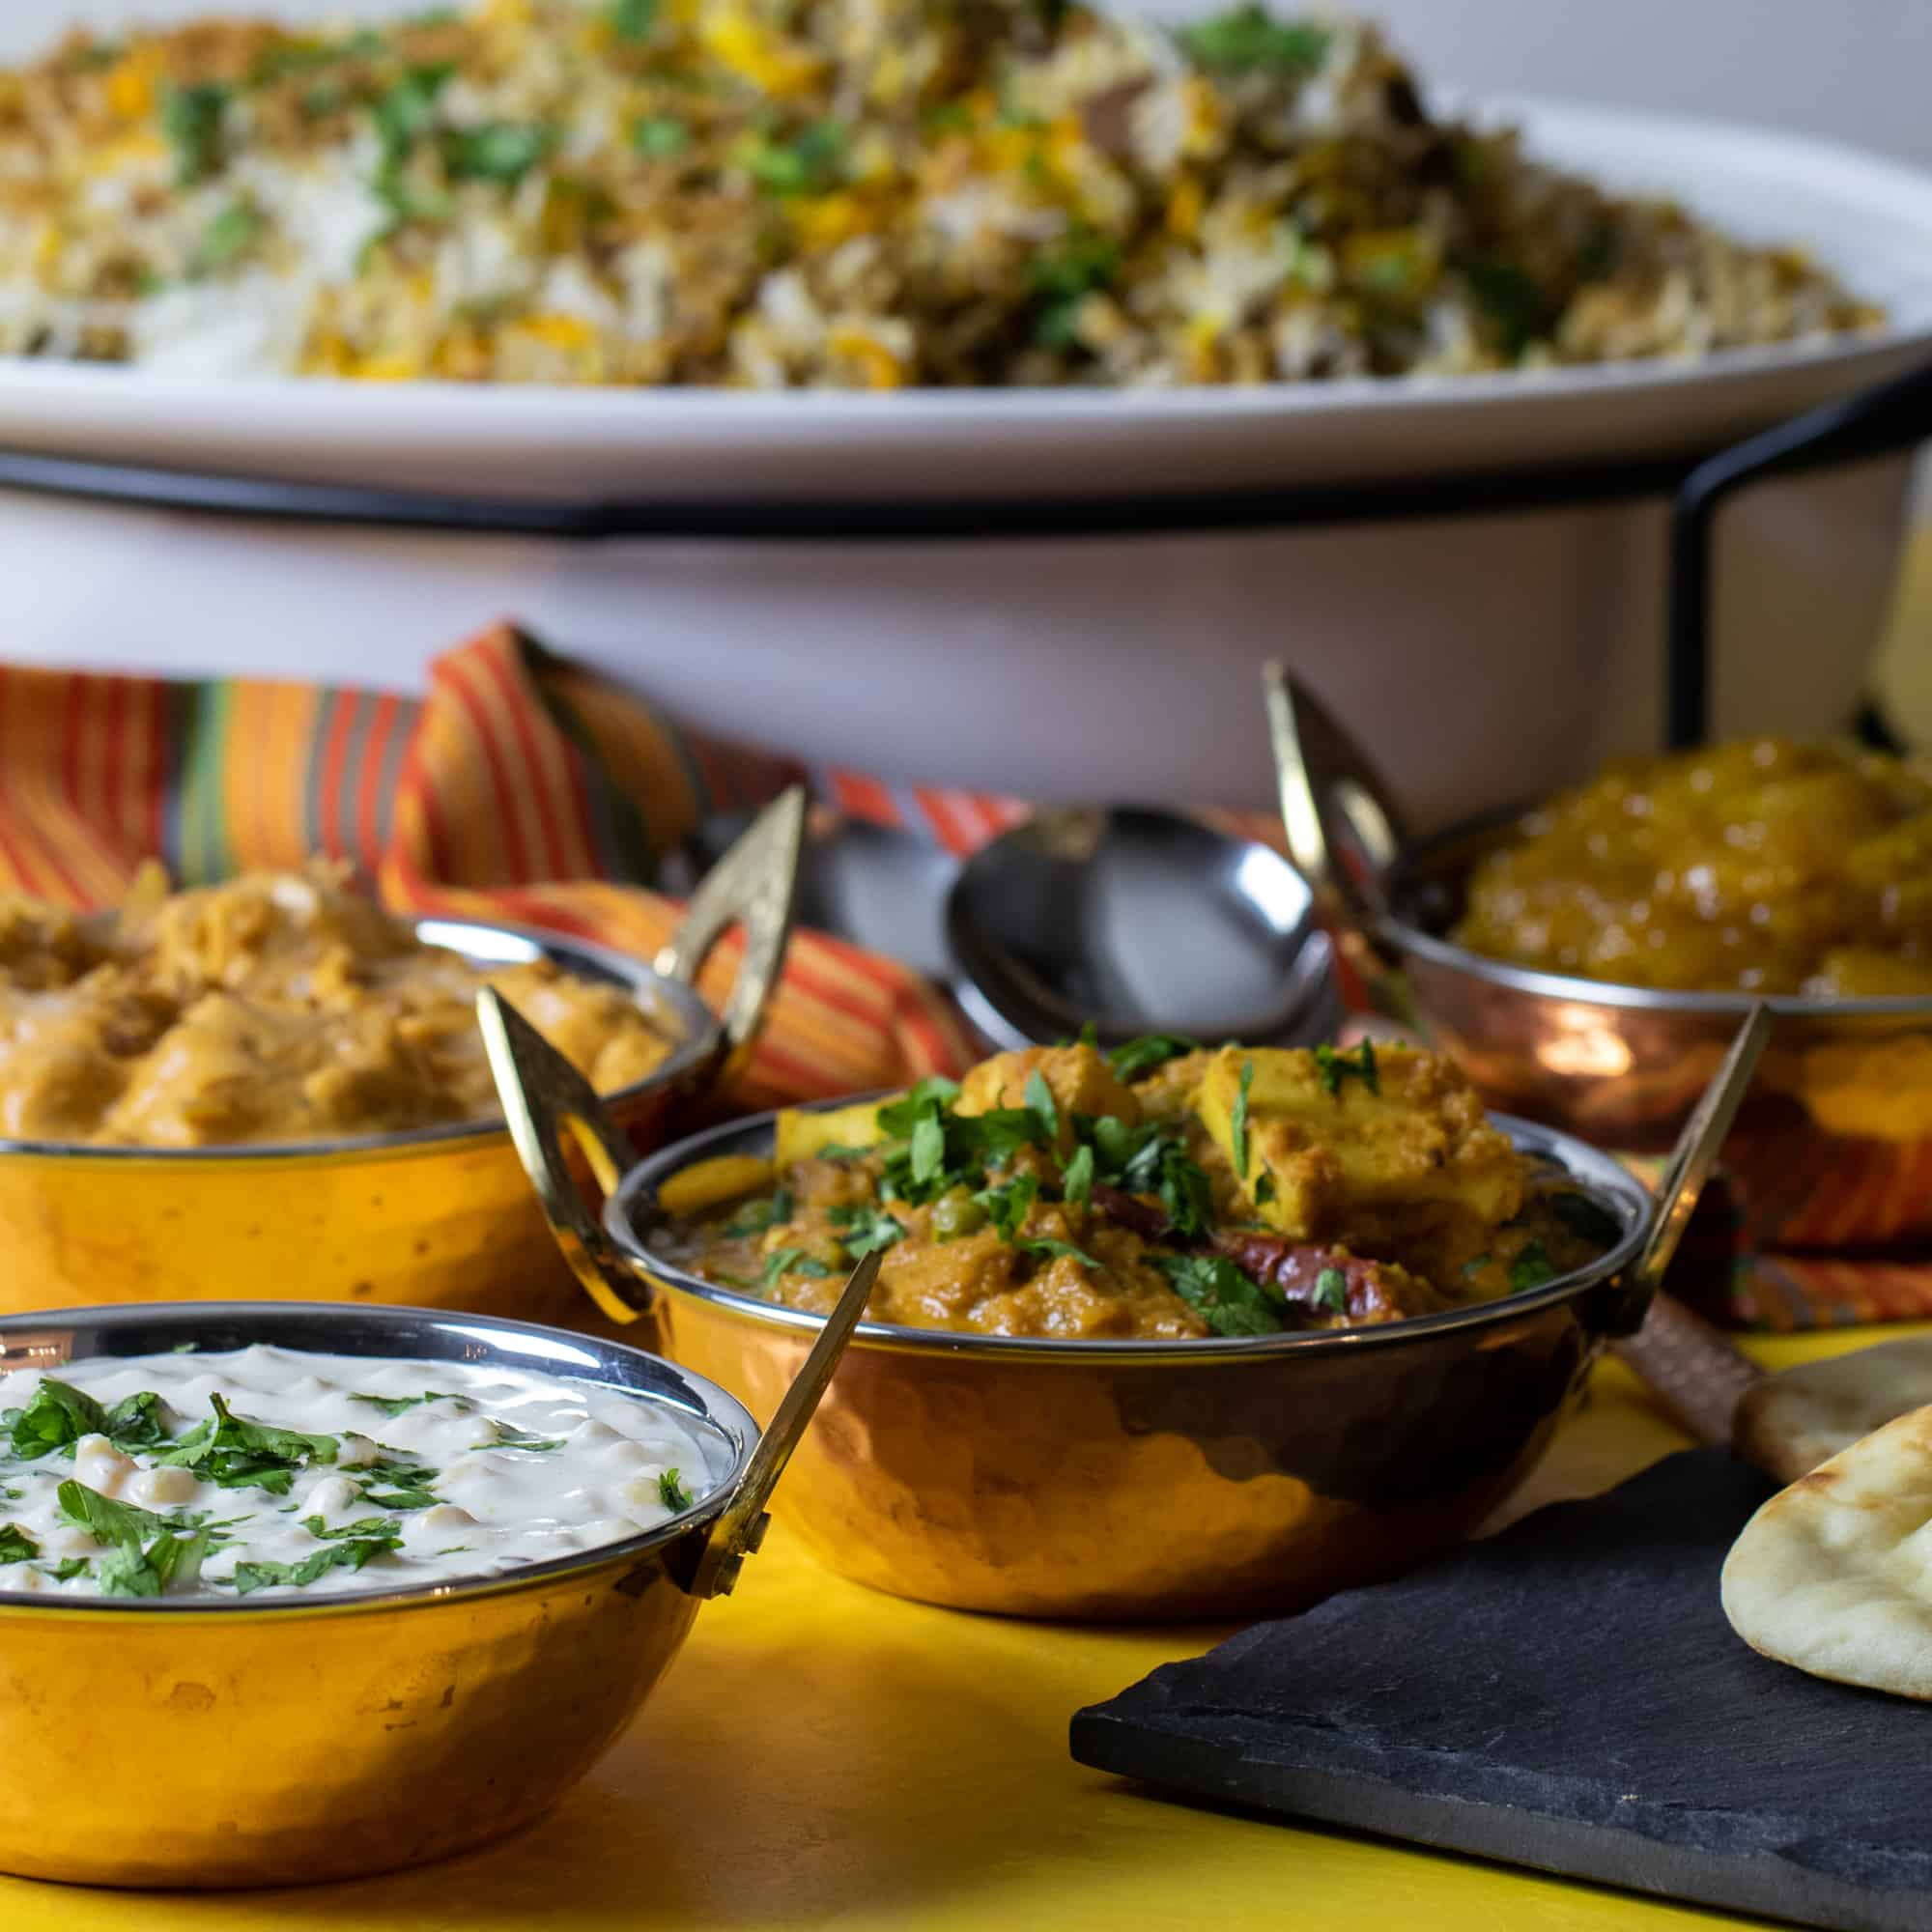 A photo of a full indian dinner including biryani, butter chicken, raita, mango chutney and matar paneer.